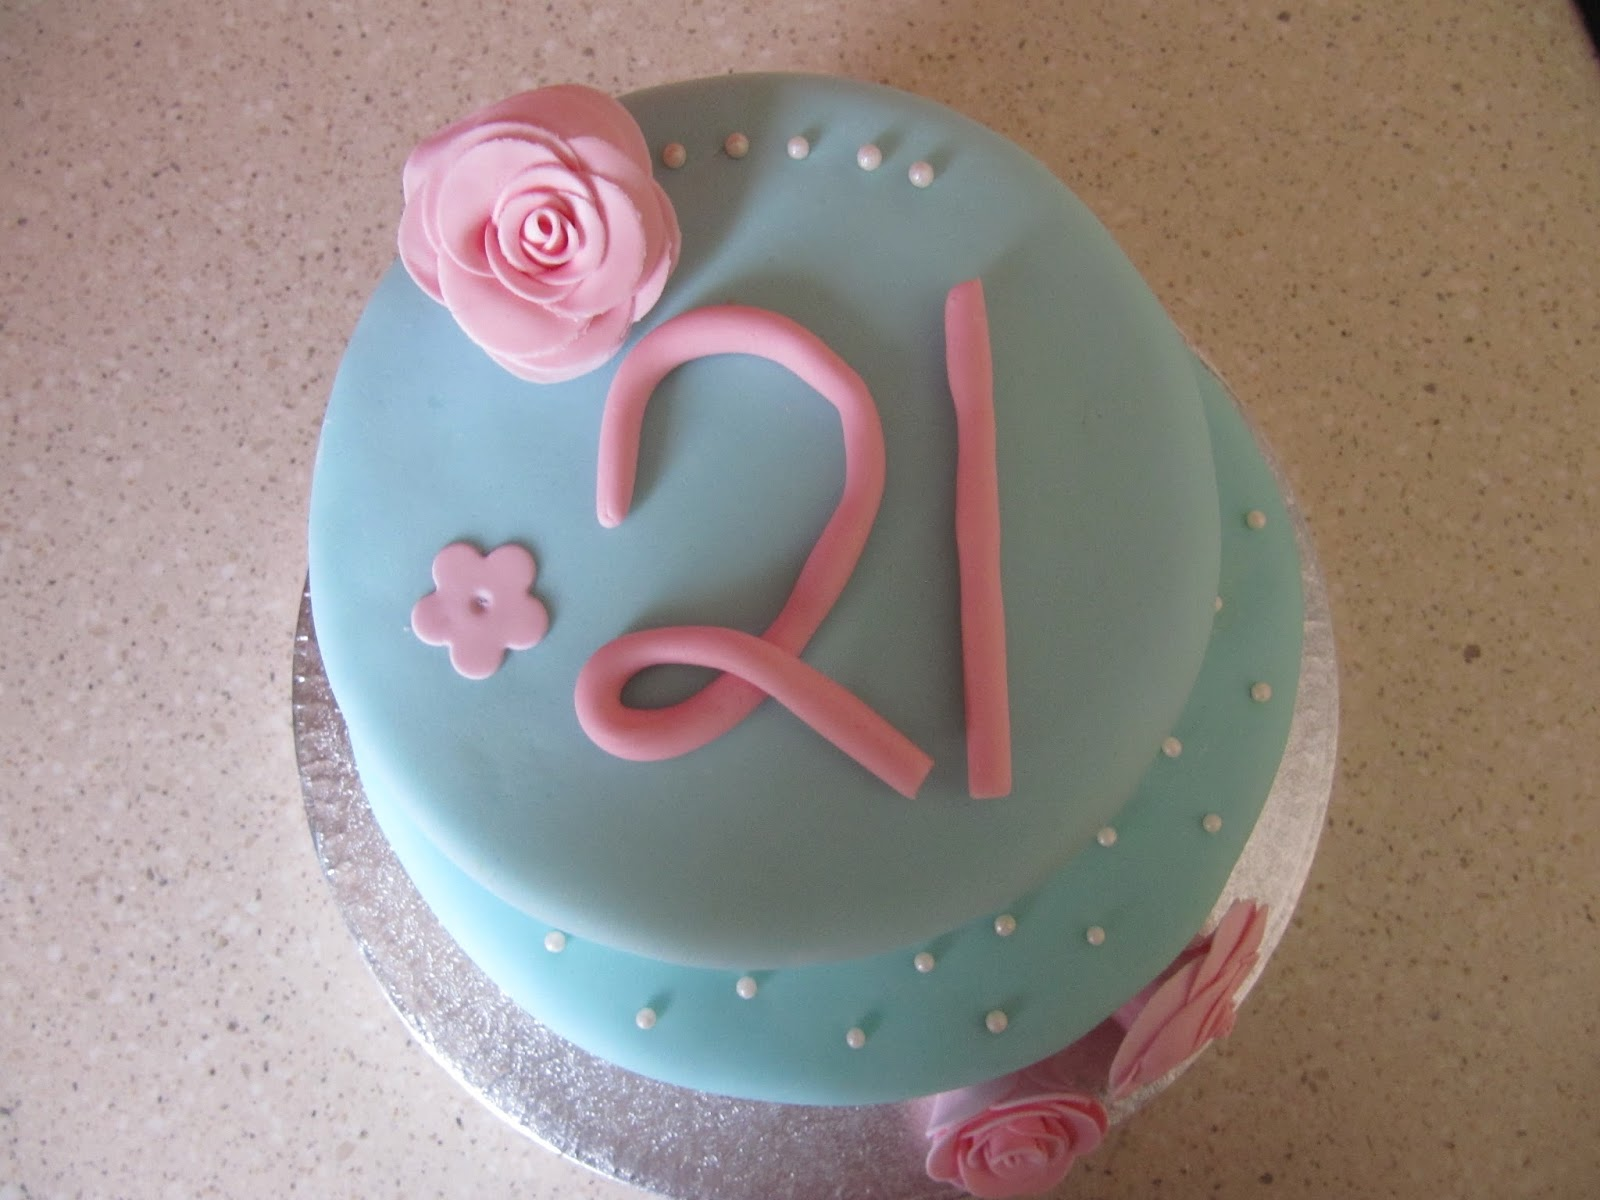 Sweet And Simple Baking Simple 21st Birthday Cake With Roses